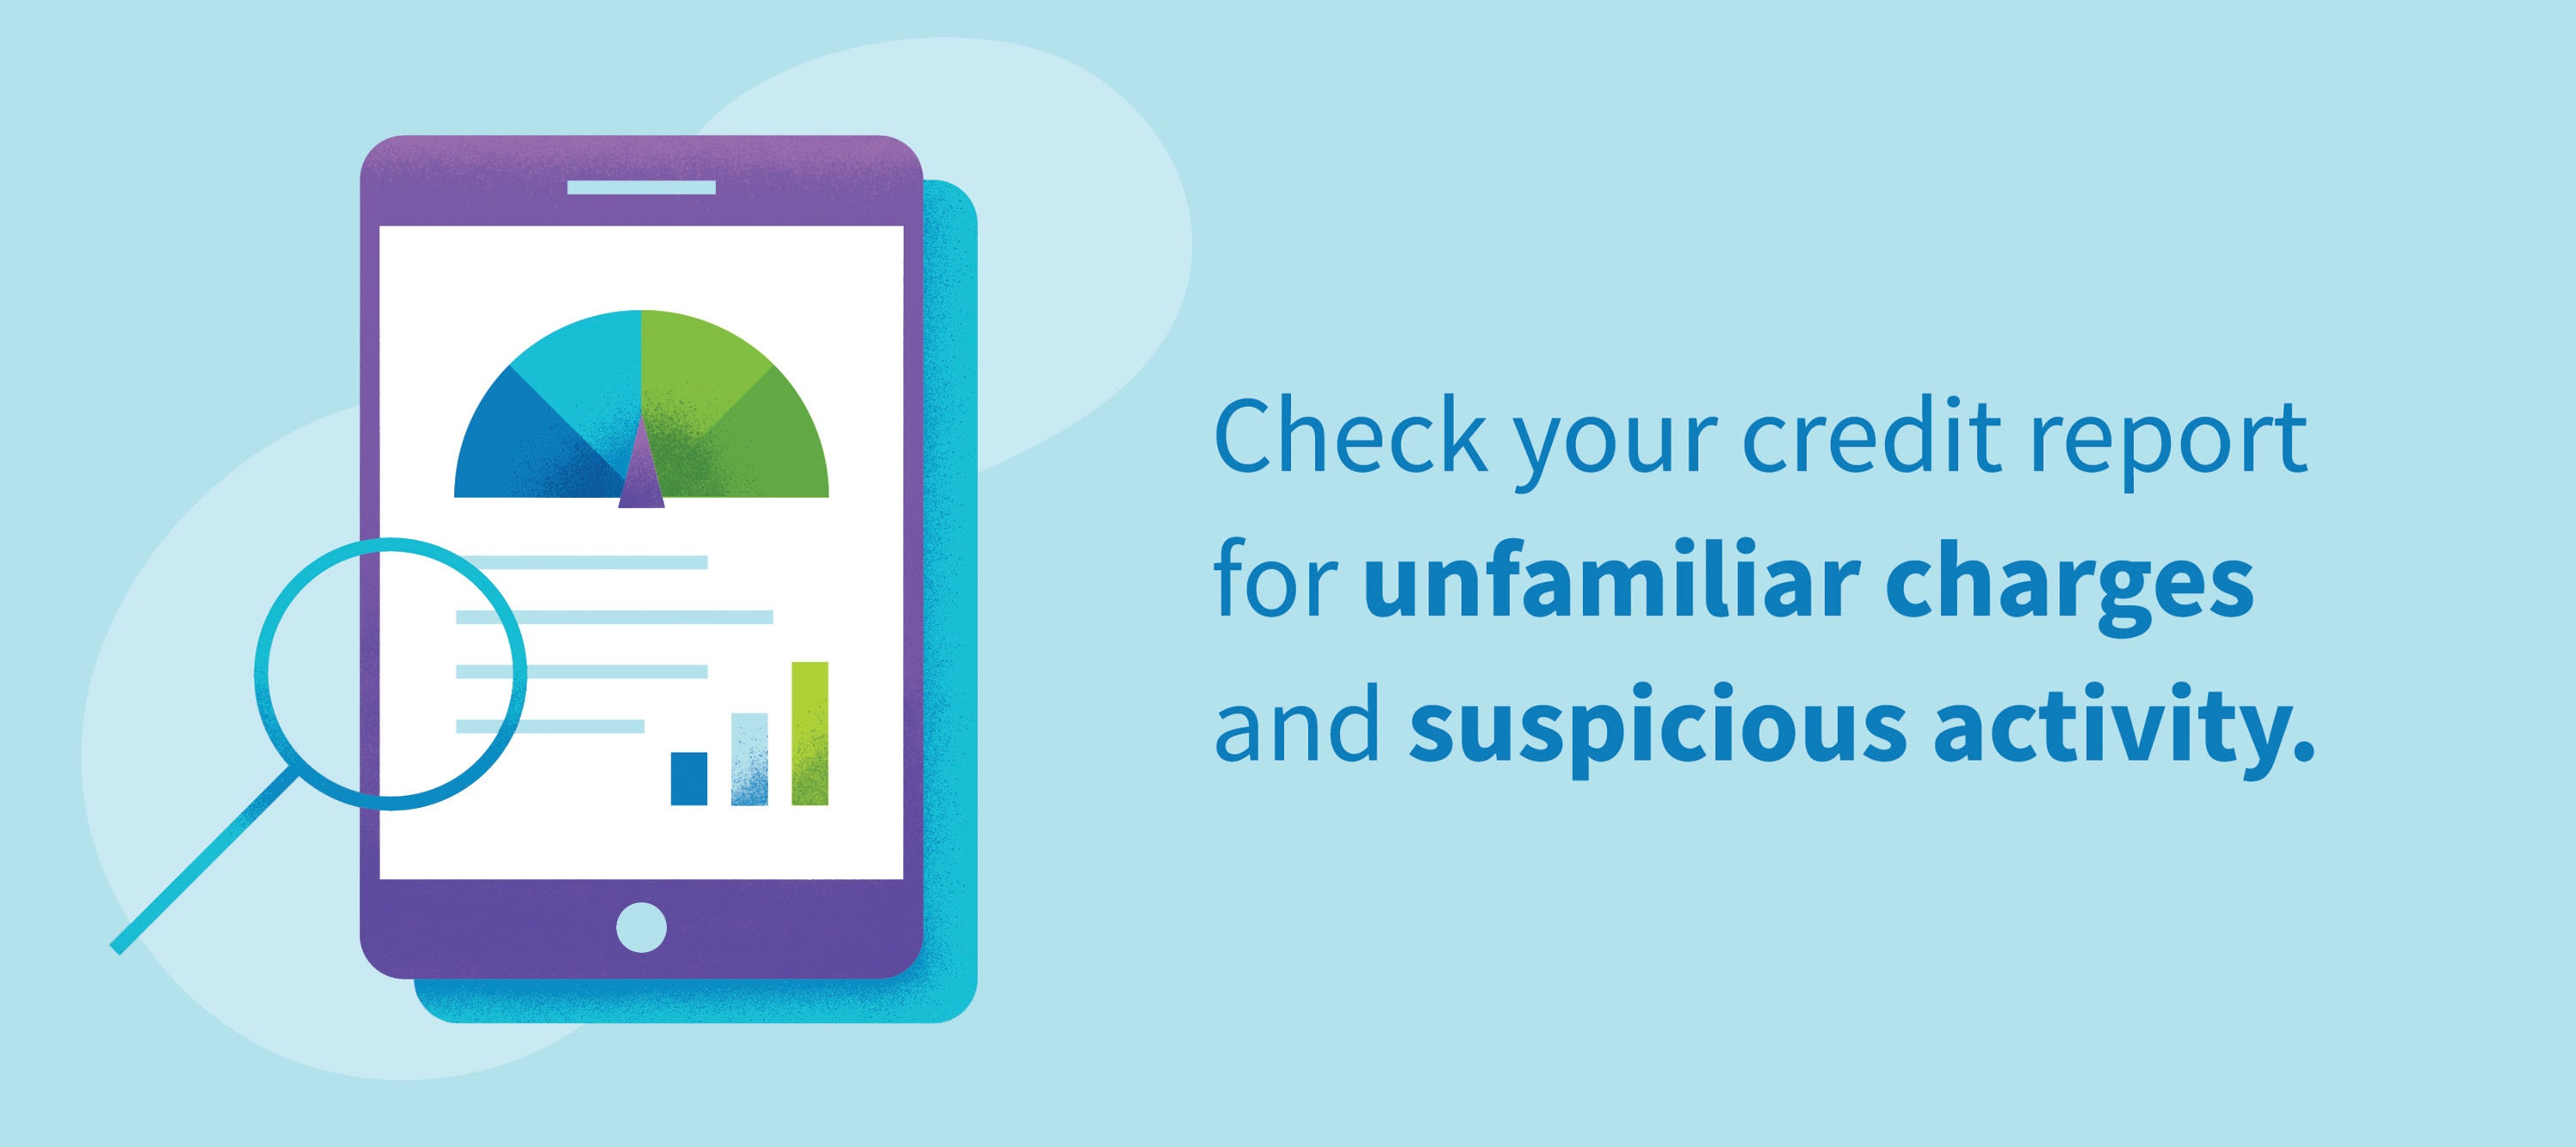 Check your credit report for unfamiliar charges and suspicious activity.